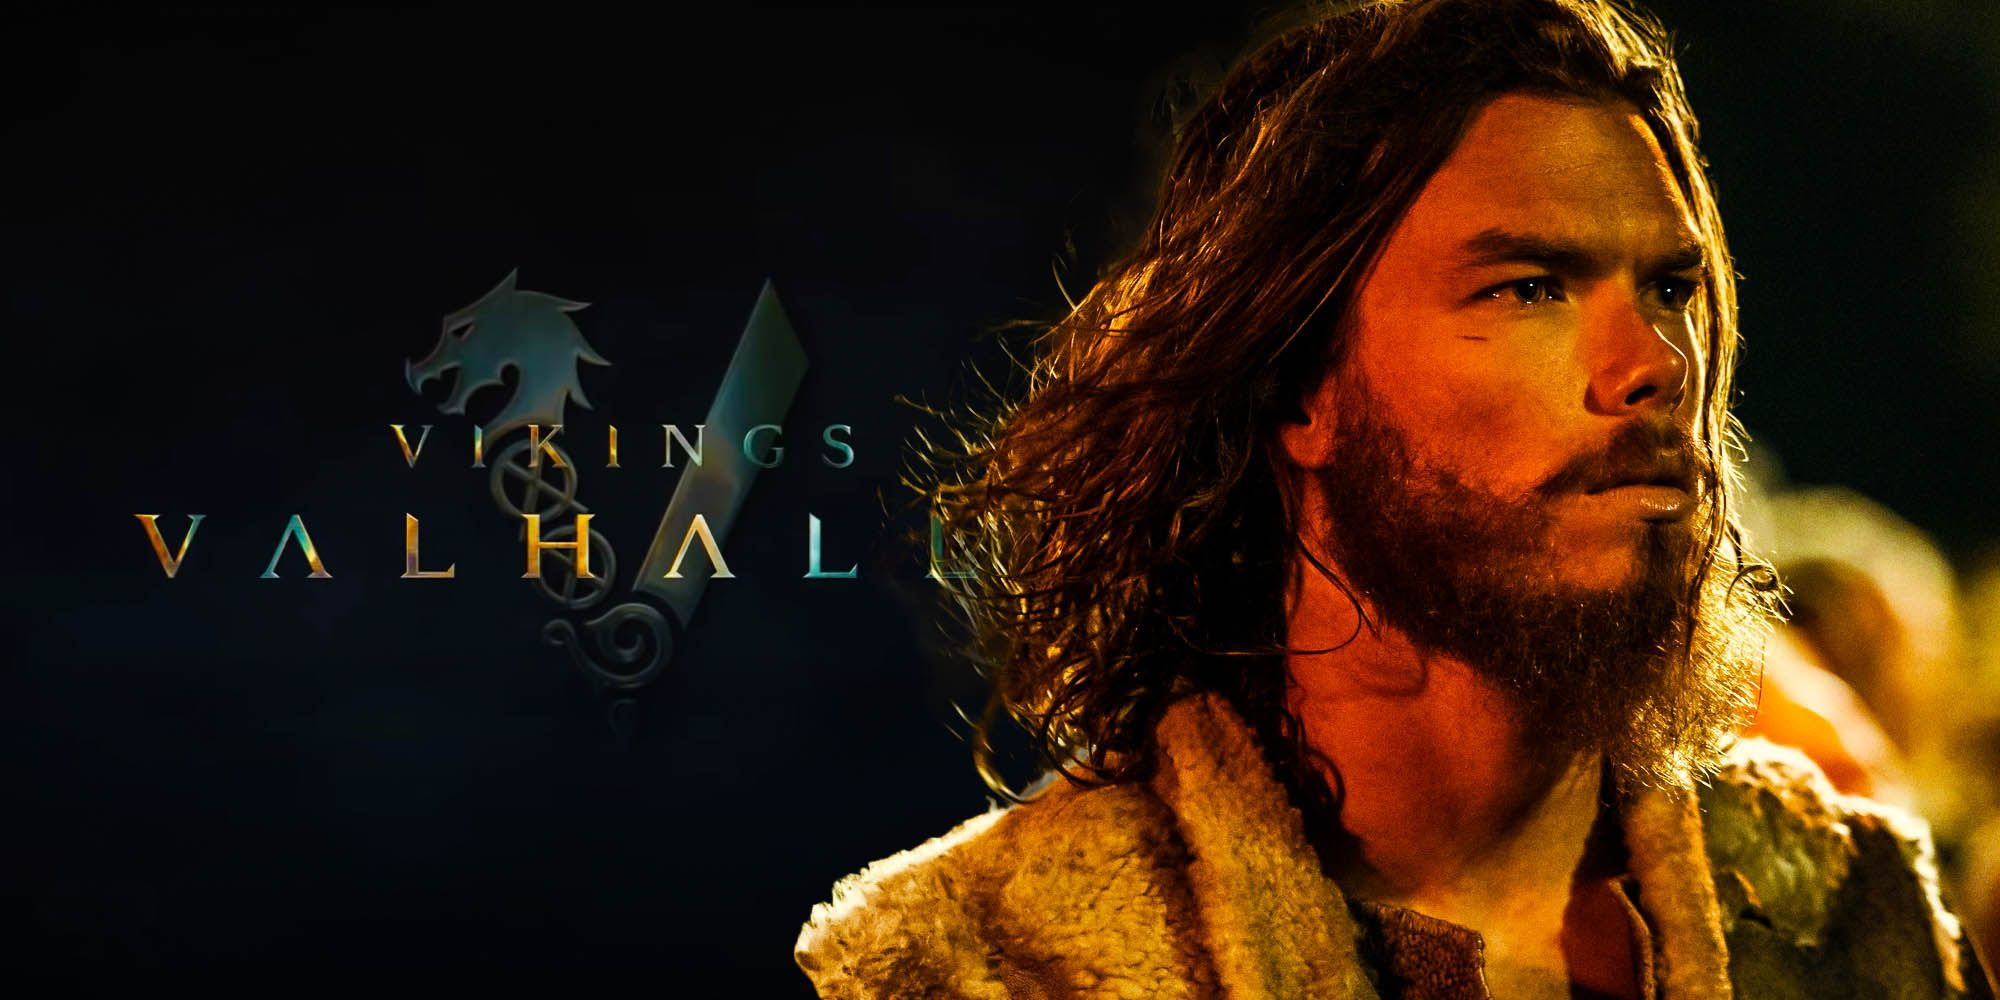 Vikings: Valhalla Explained - What The Spinoff Title Really Means